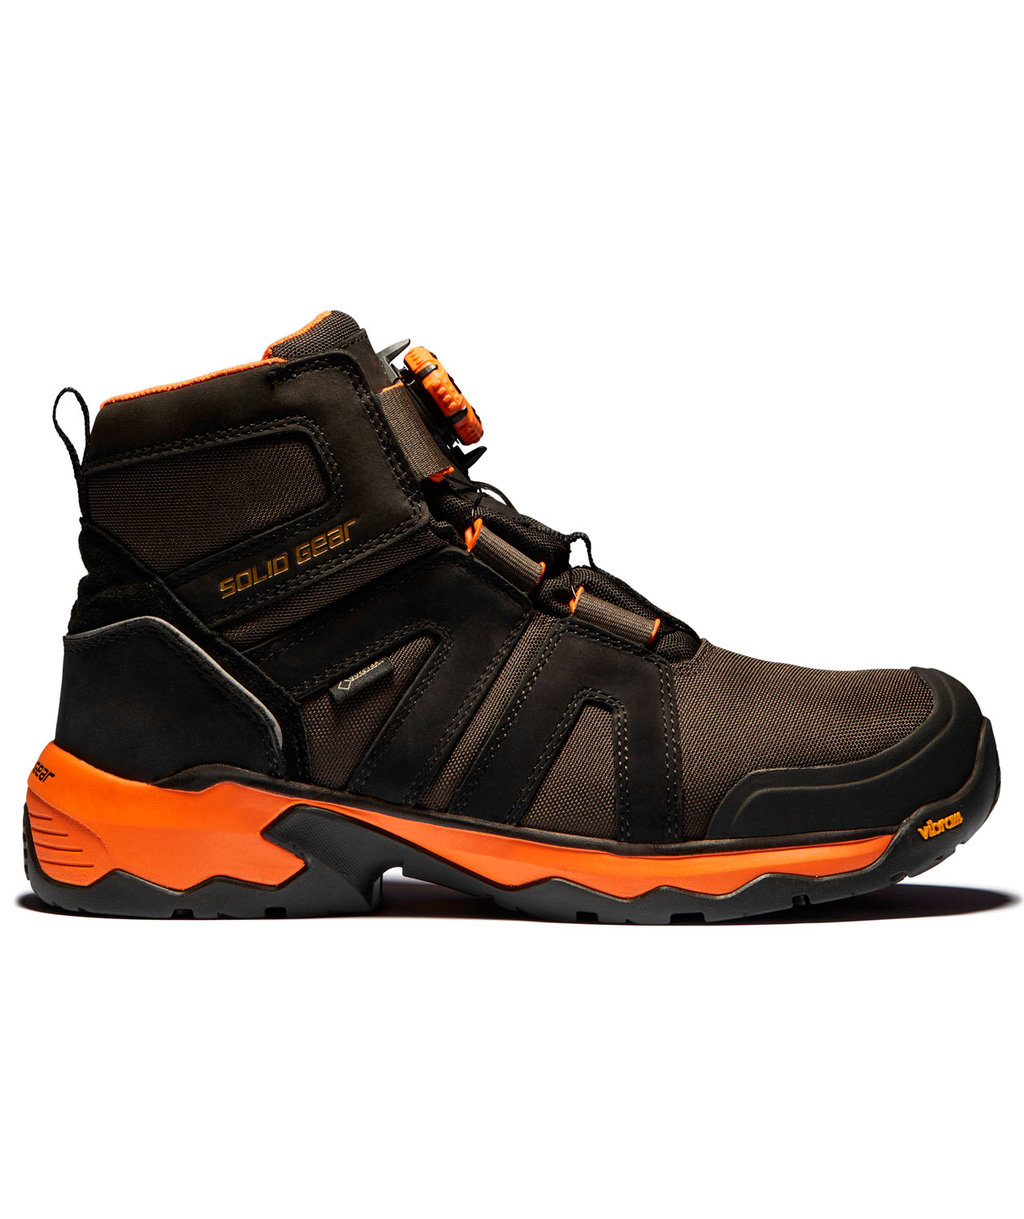 Solid Gear Tigris GTX AG Mid safety bootees S3, Black/Orange